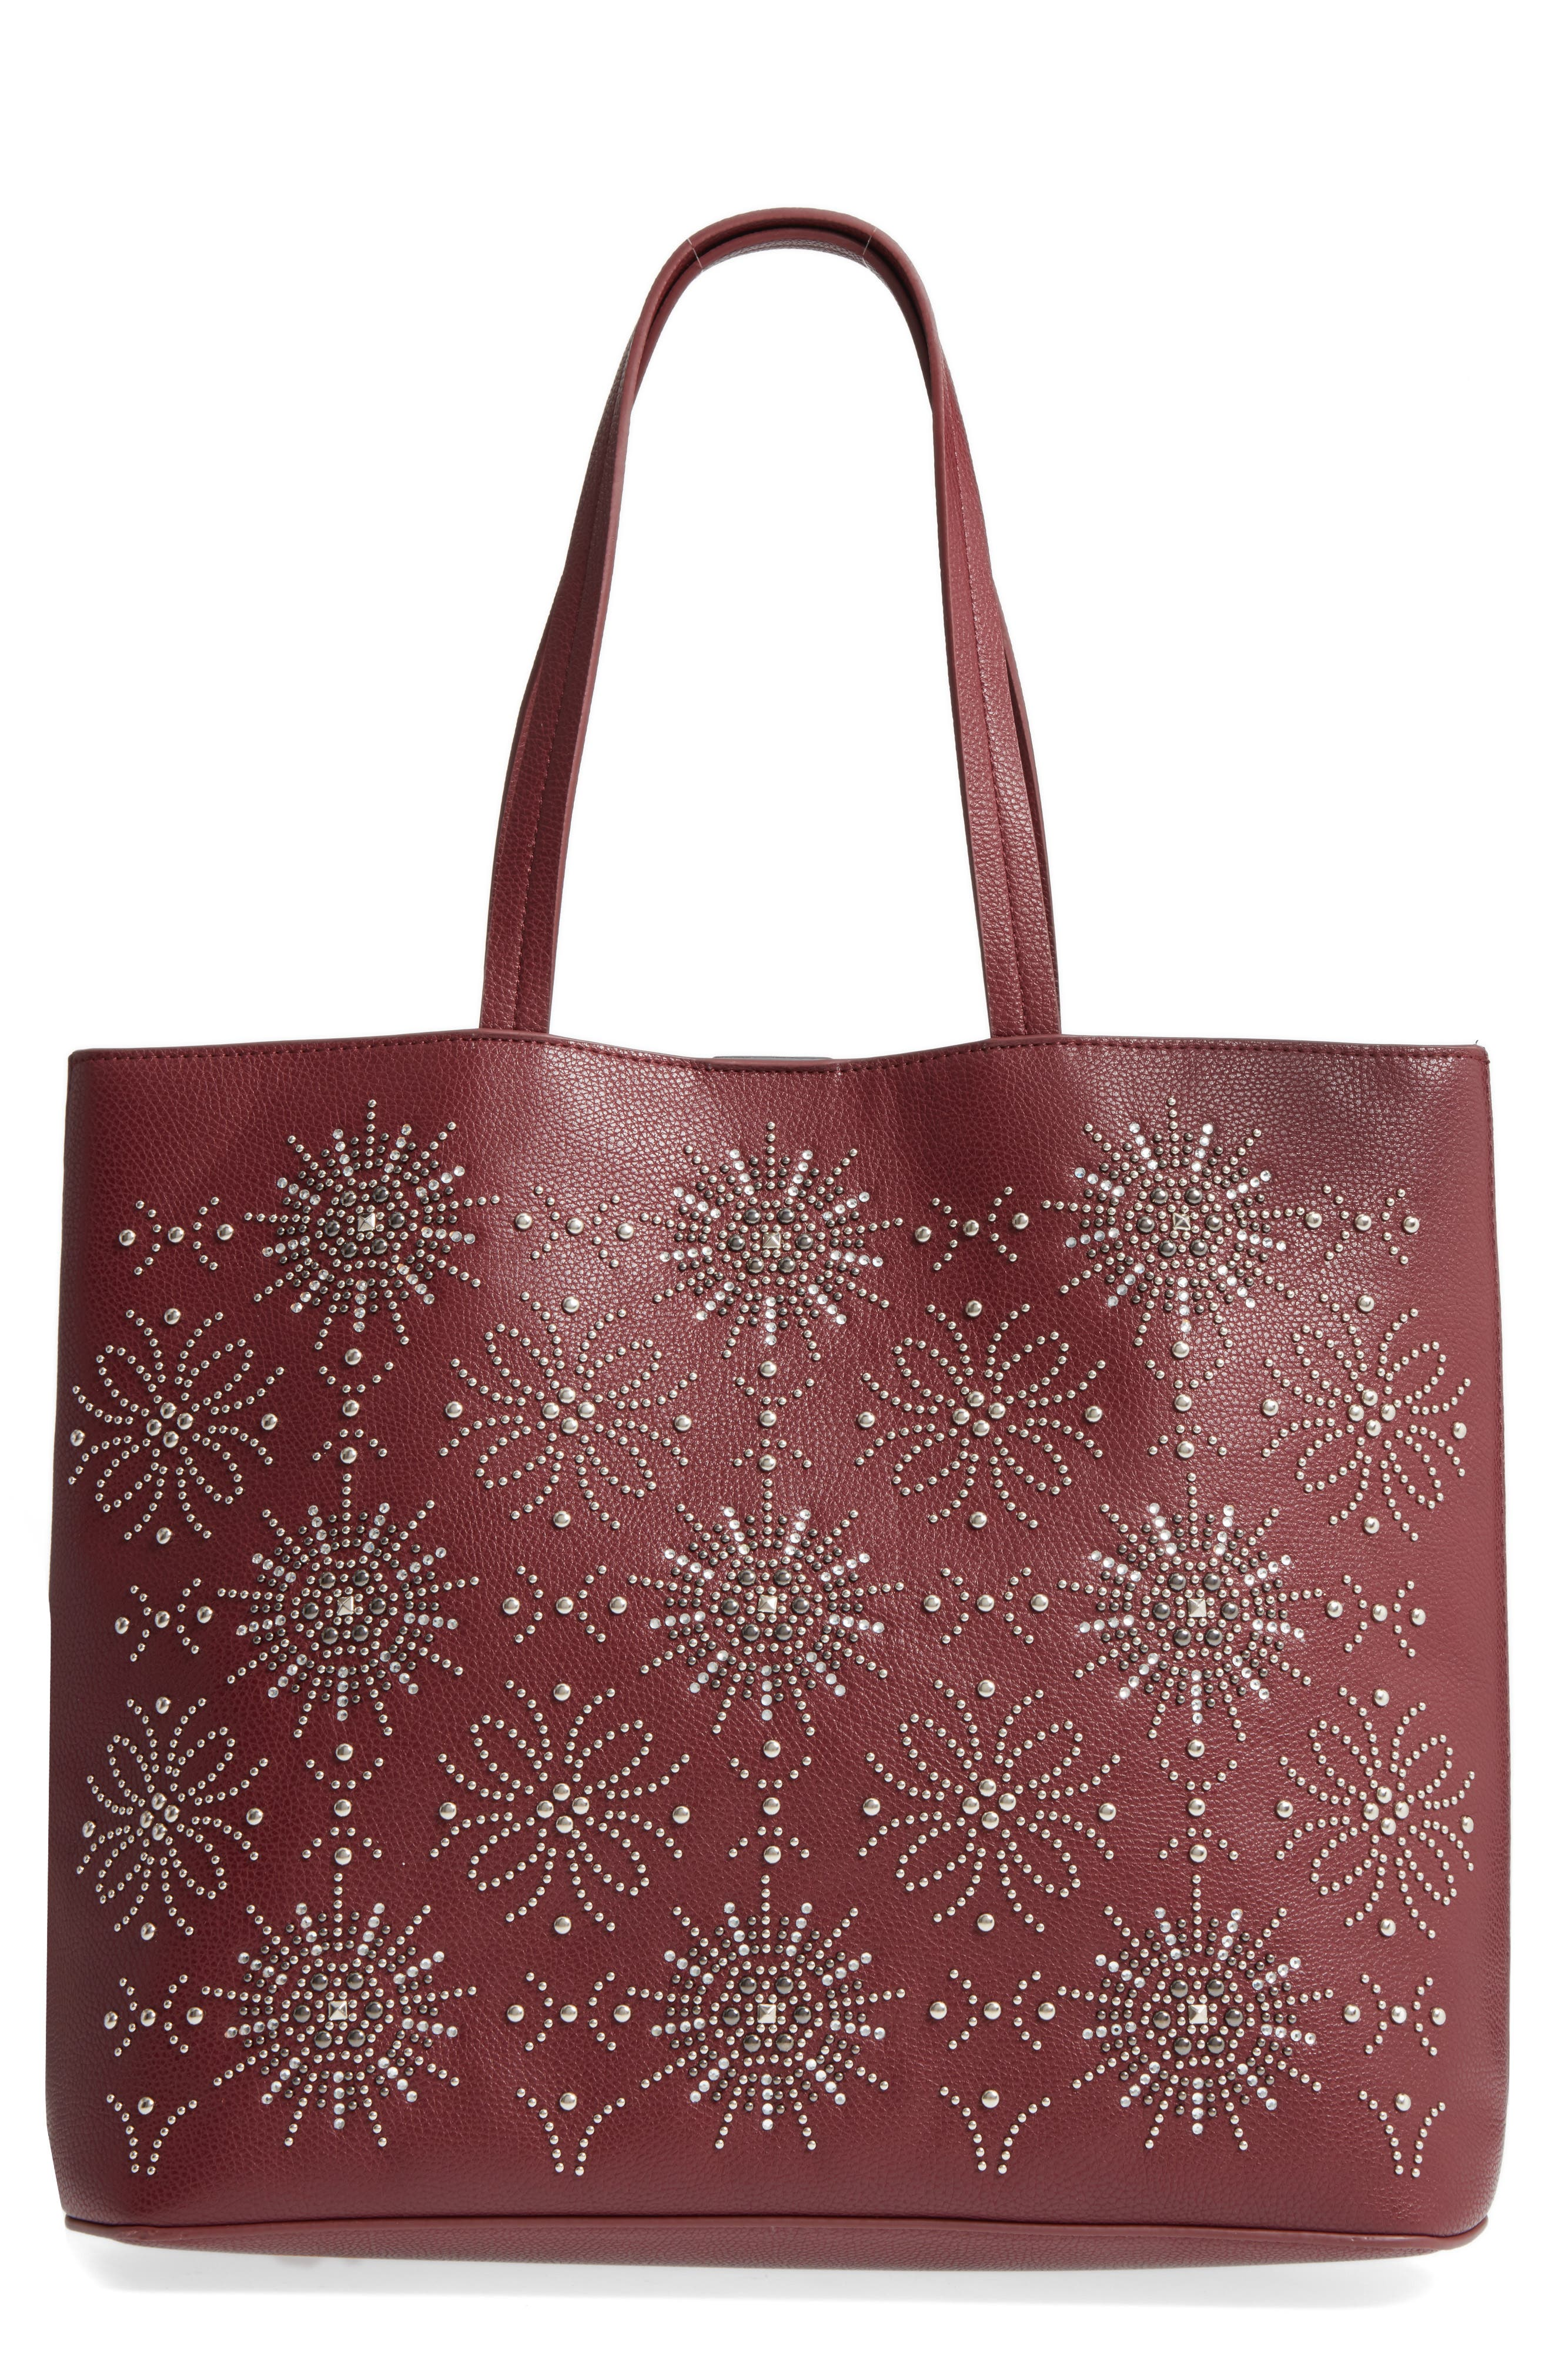 Alternate Image 1 Selected - Chelsea28 Starburst Faux Leather Tote & Zip Pouch